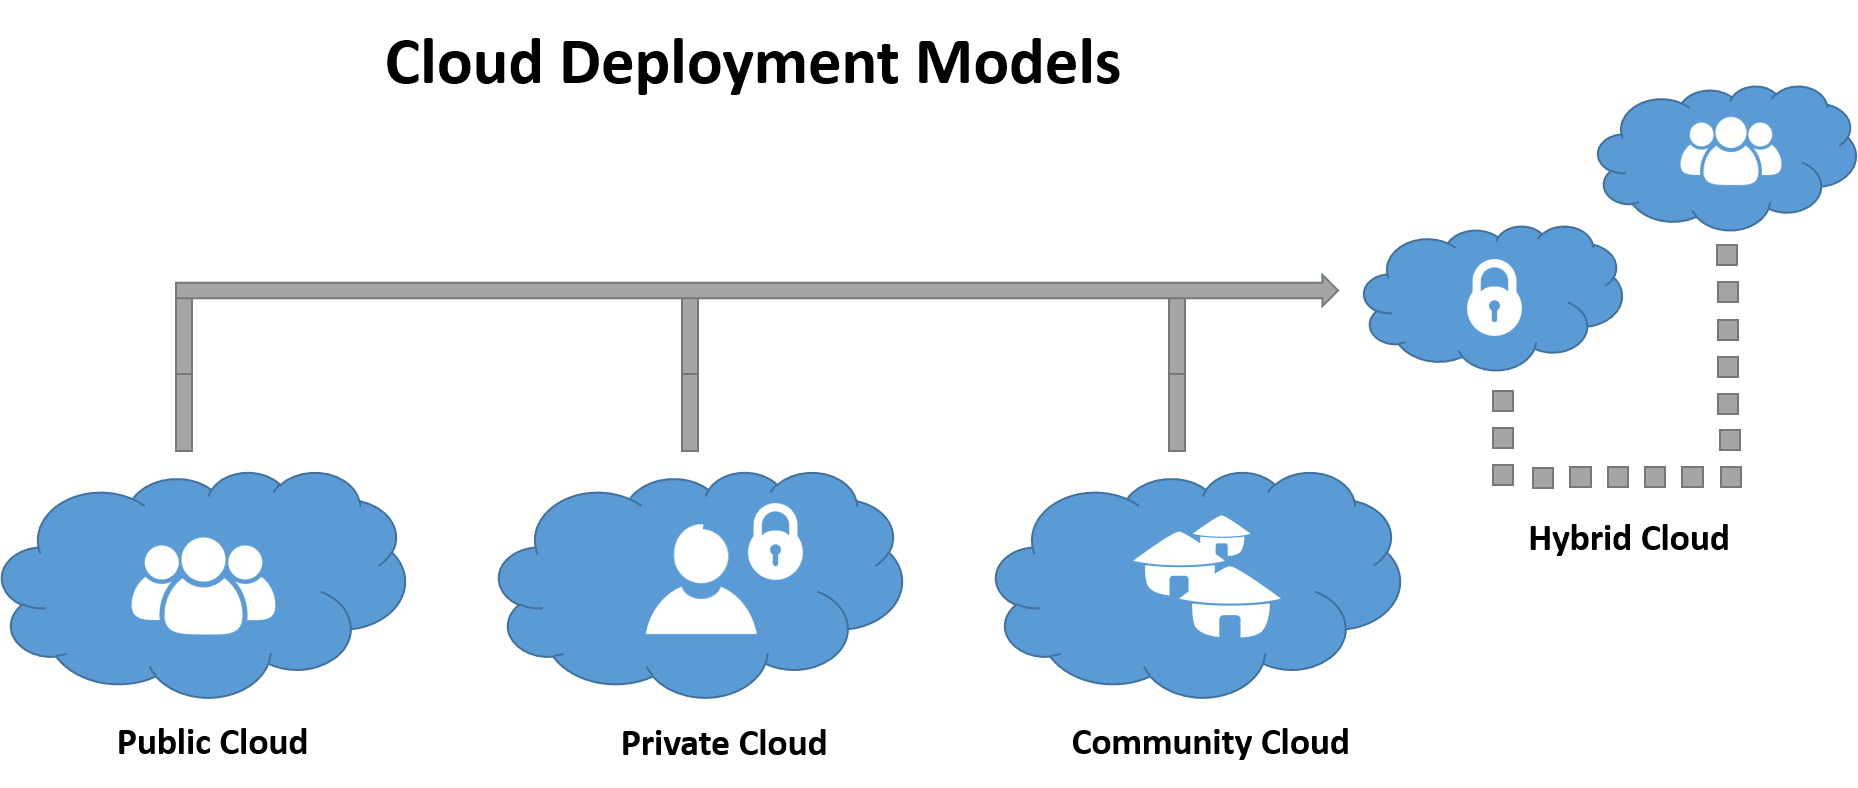 Cloud computing deployment structures diagram